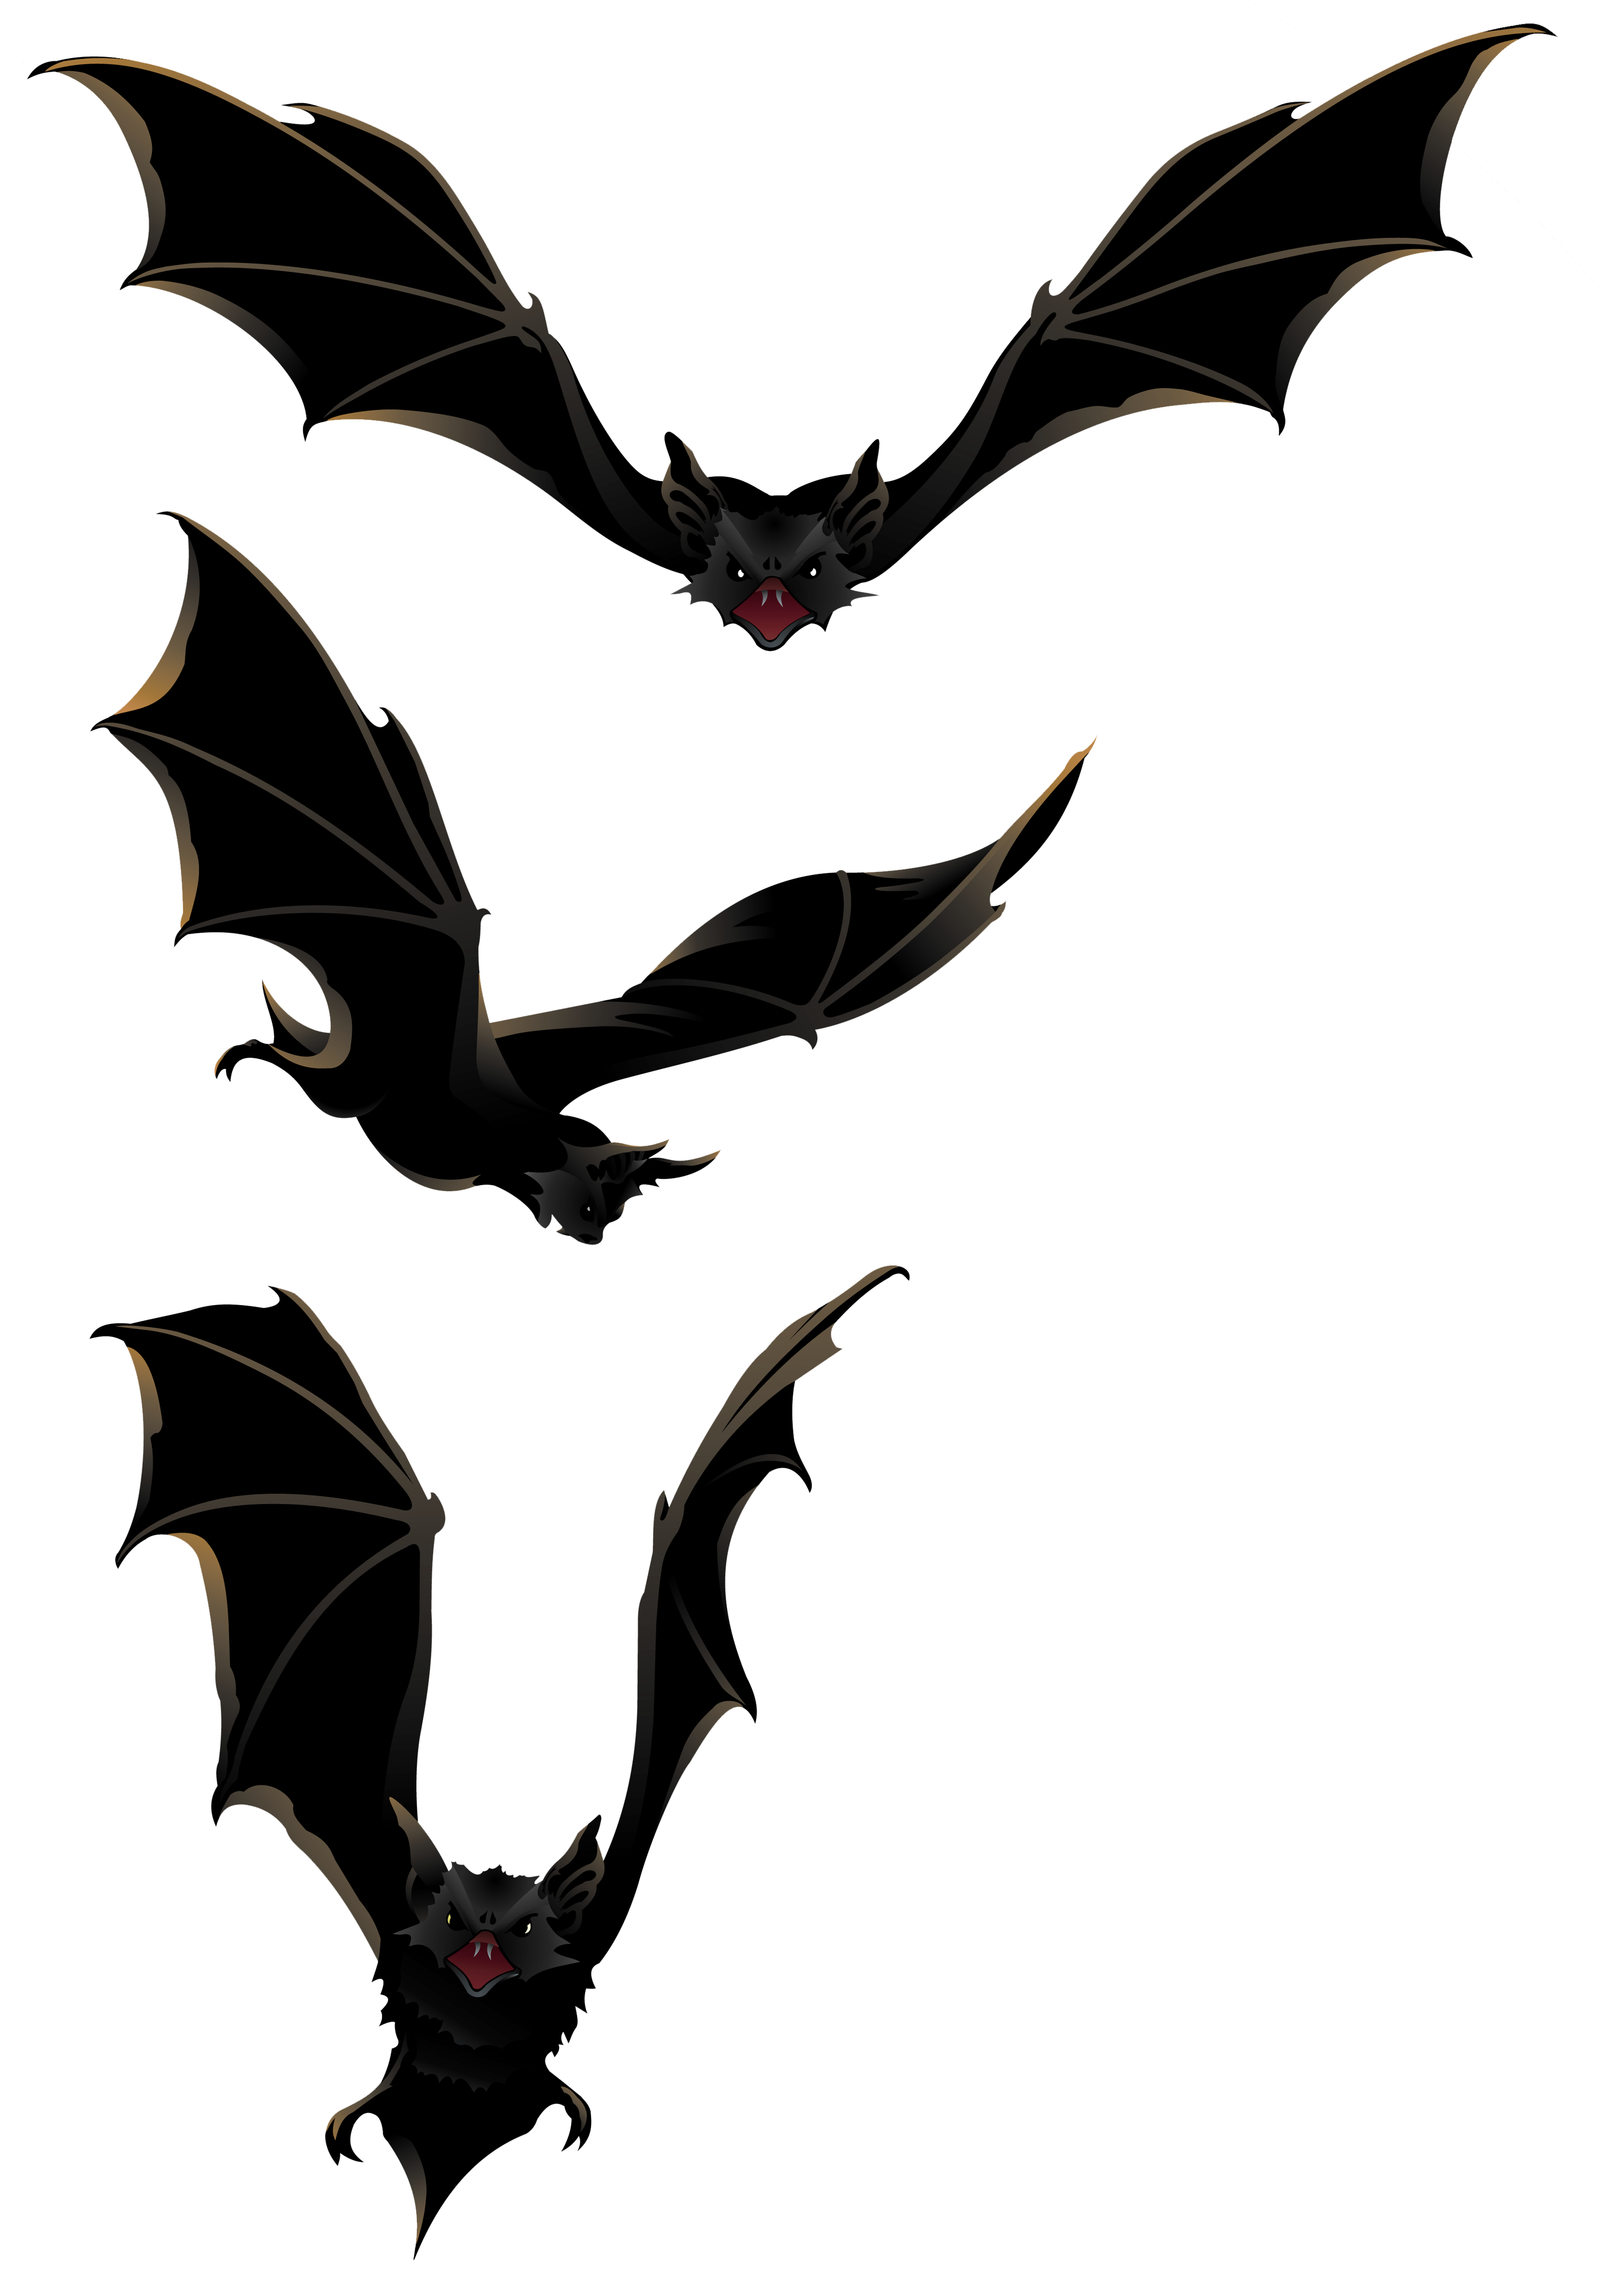 Bat clipart big black Flying collection Best clipart #4637